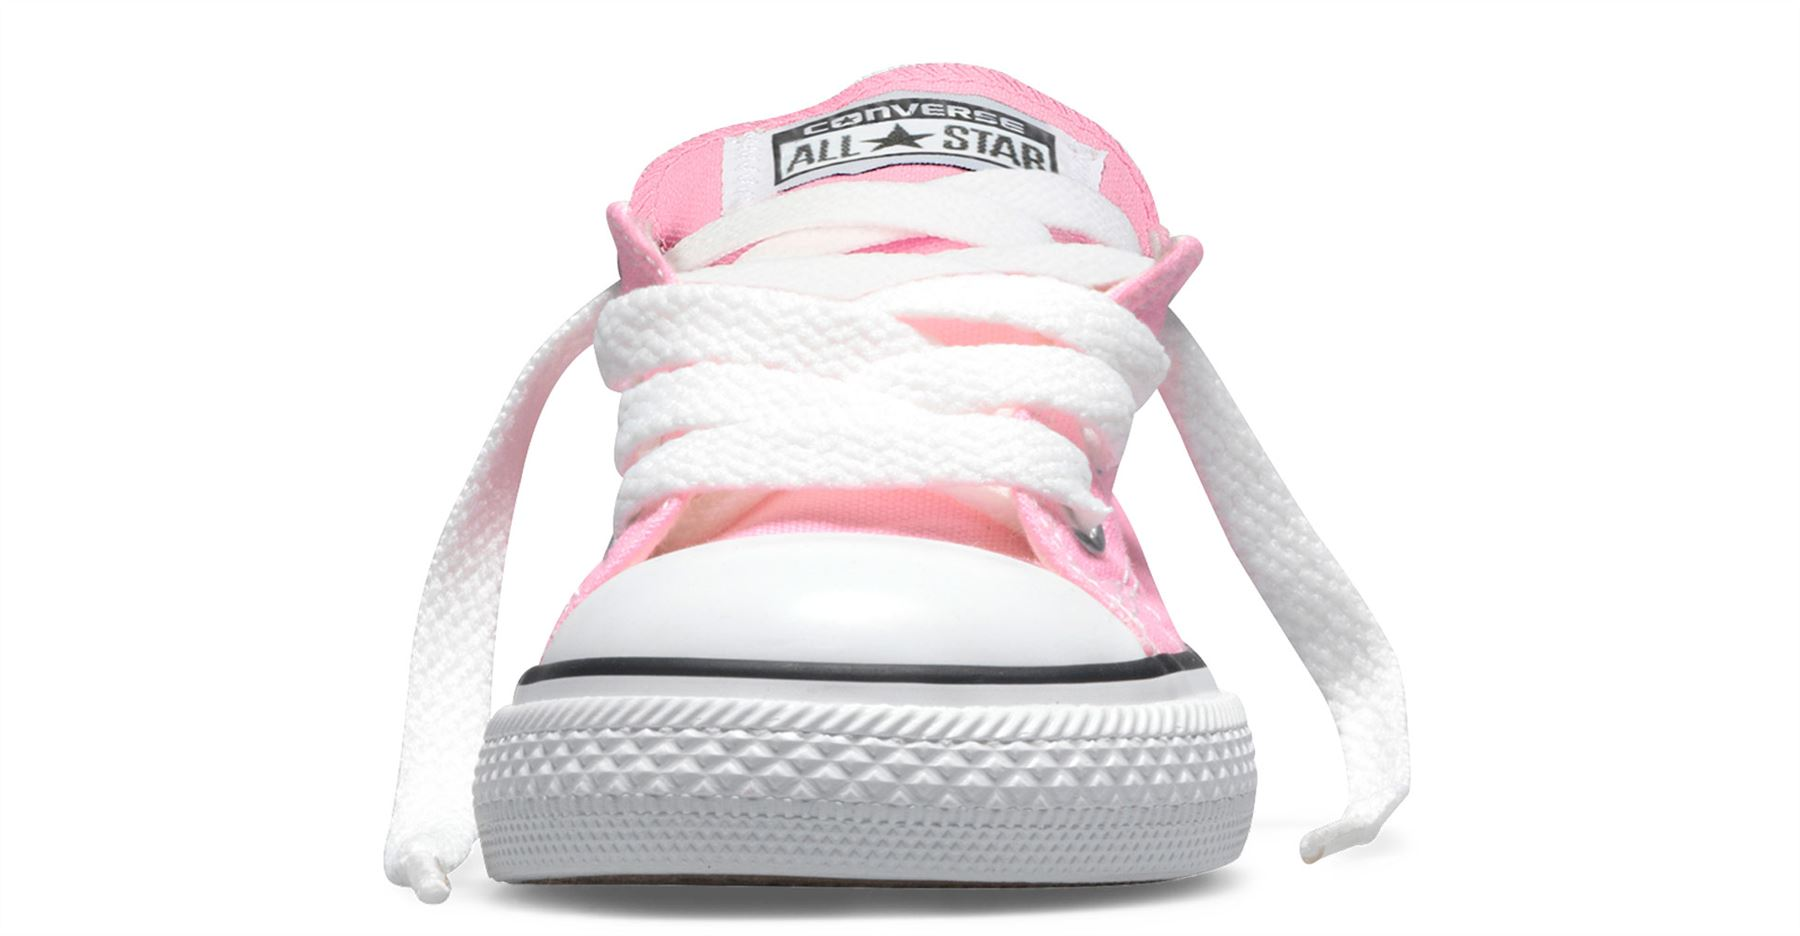 CONVERSE INF C/T A/S OX PINK 7J238C